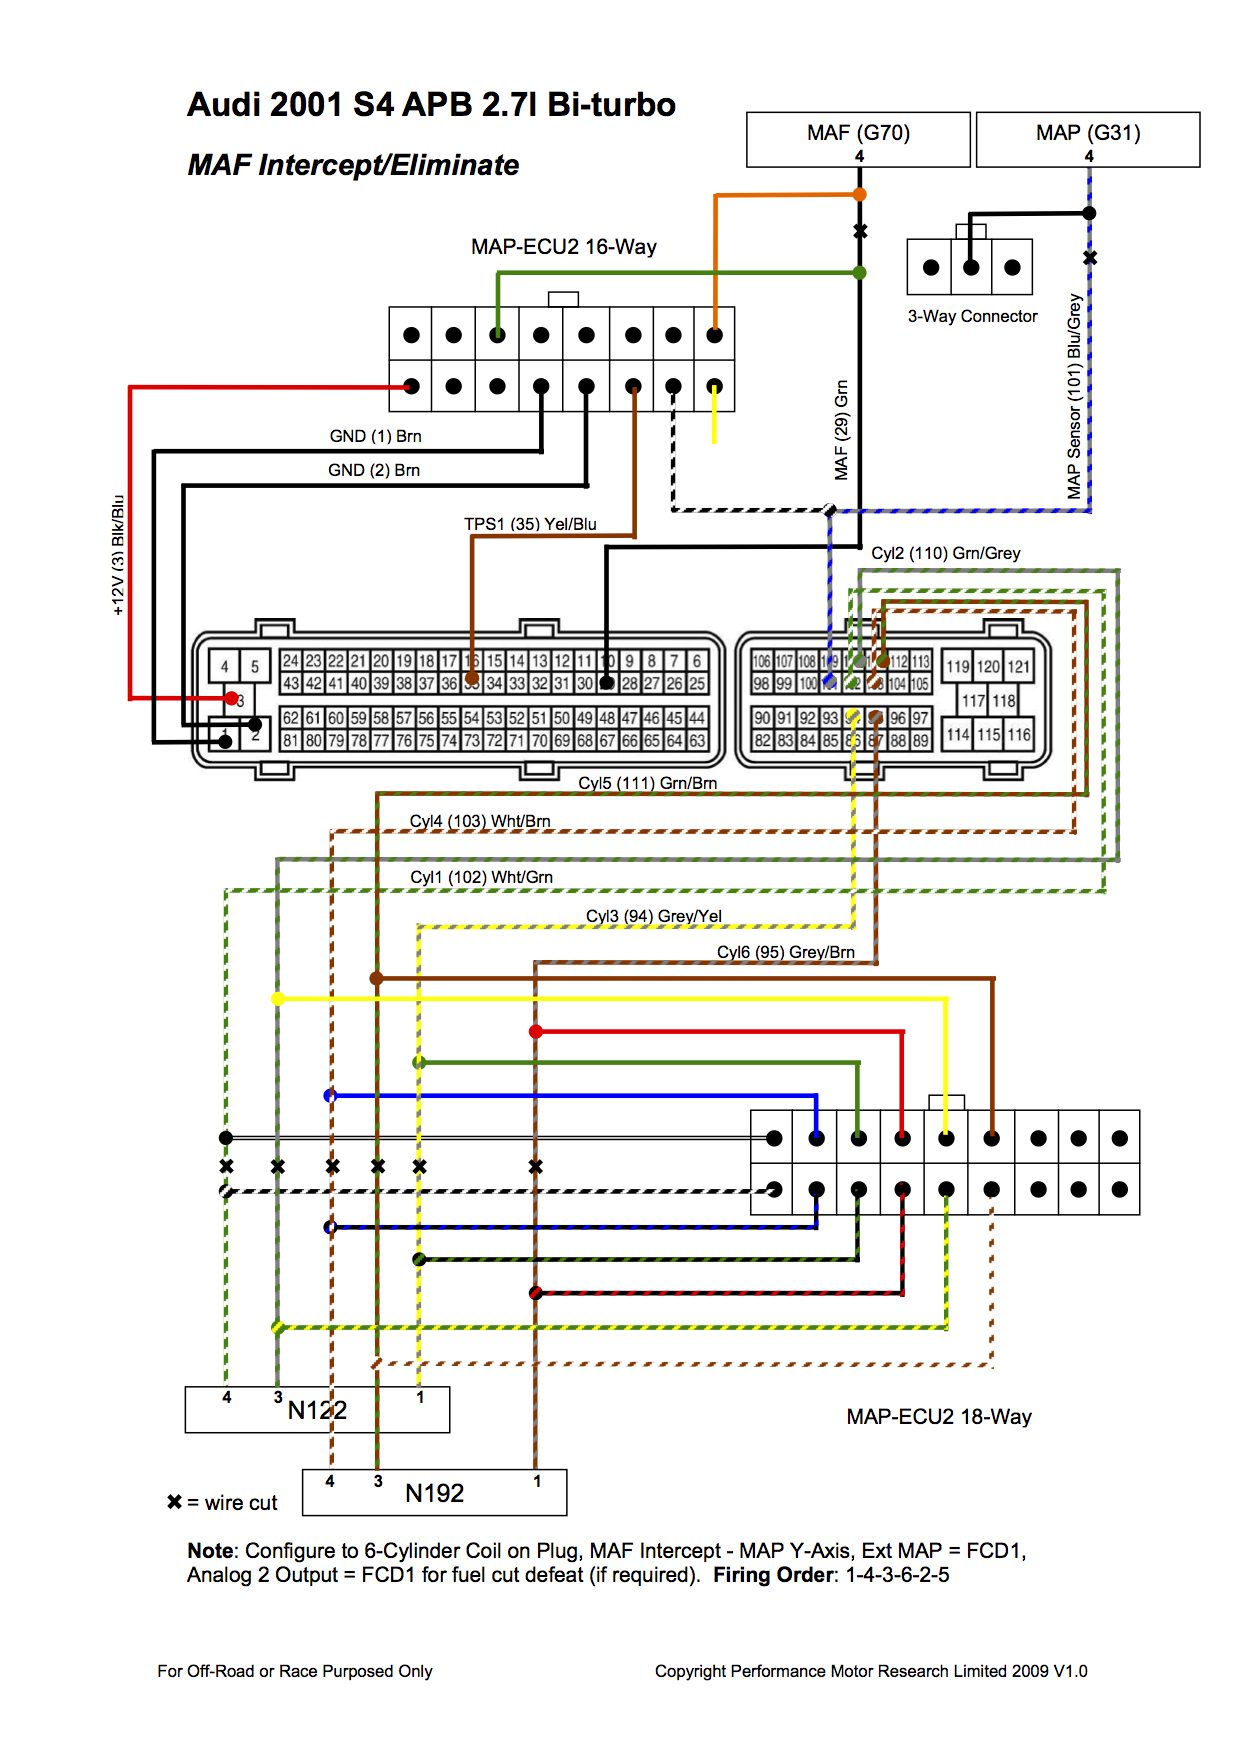 hight resolution of 2002 mr2 wiring diagram simple wiring diagrams car audio speaker wiring diagram mr2 audio diagram